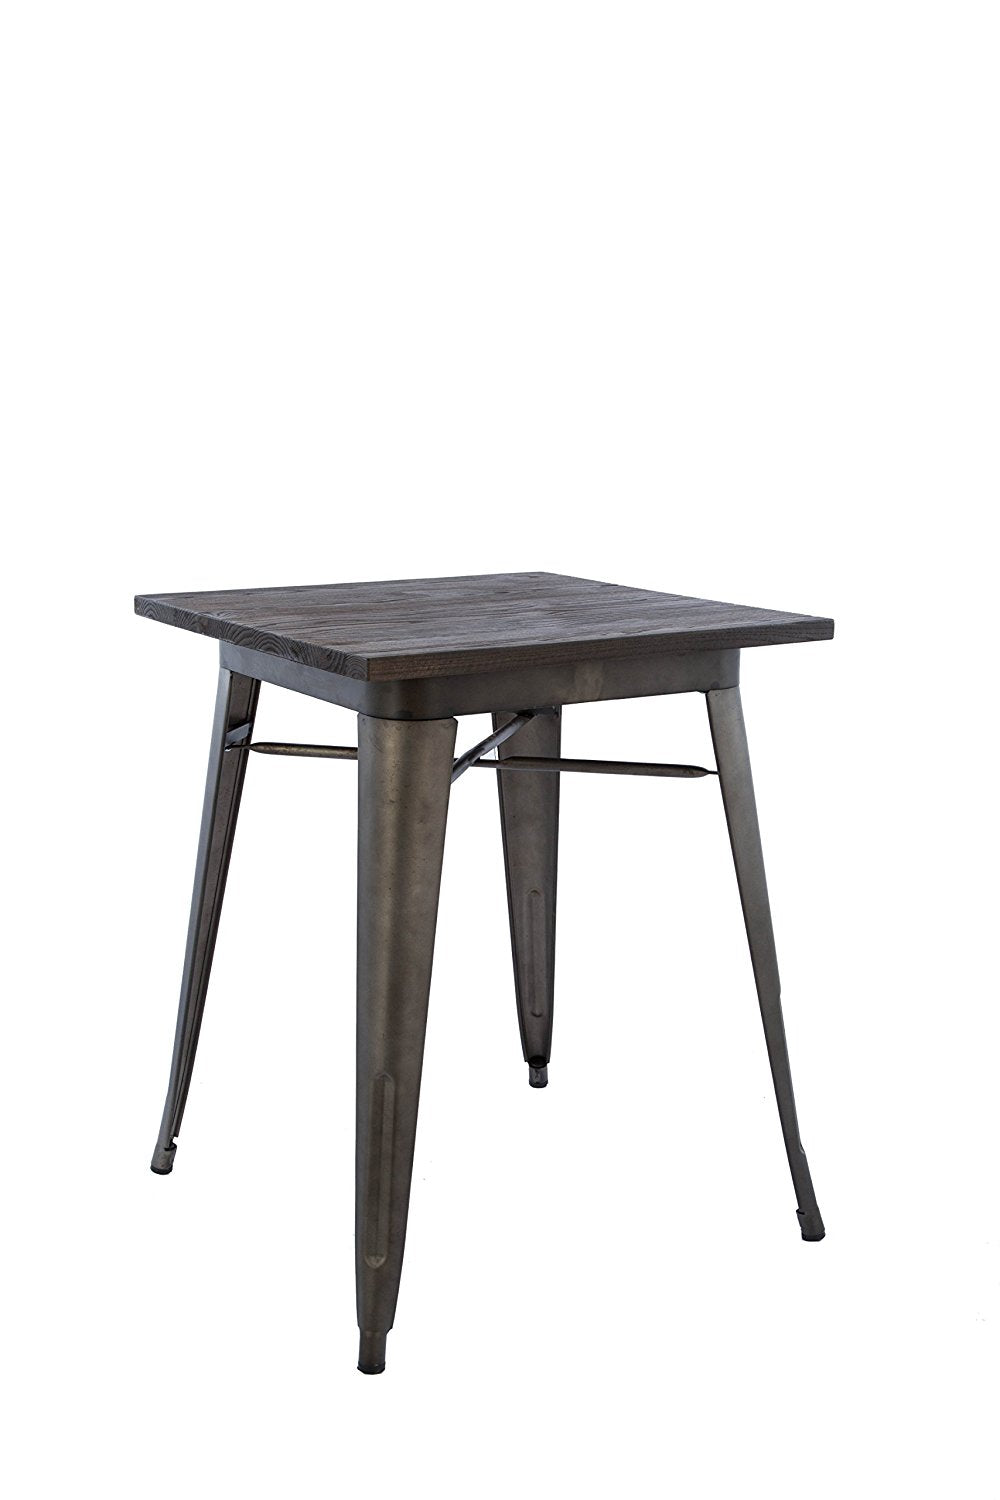 Picture of: Industrial Antique Rustic Metal Indoor Outdoor Dining Table With Wood Btexpert